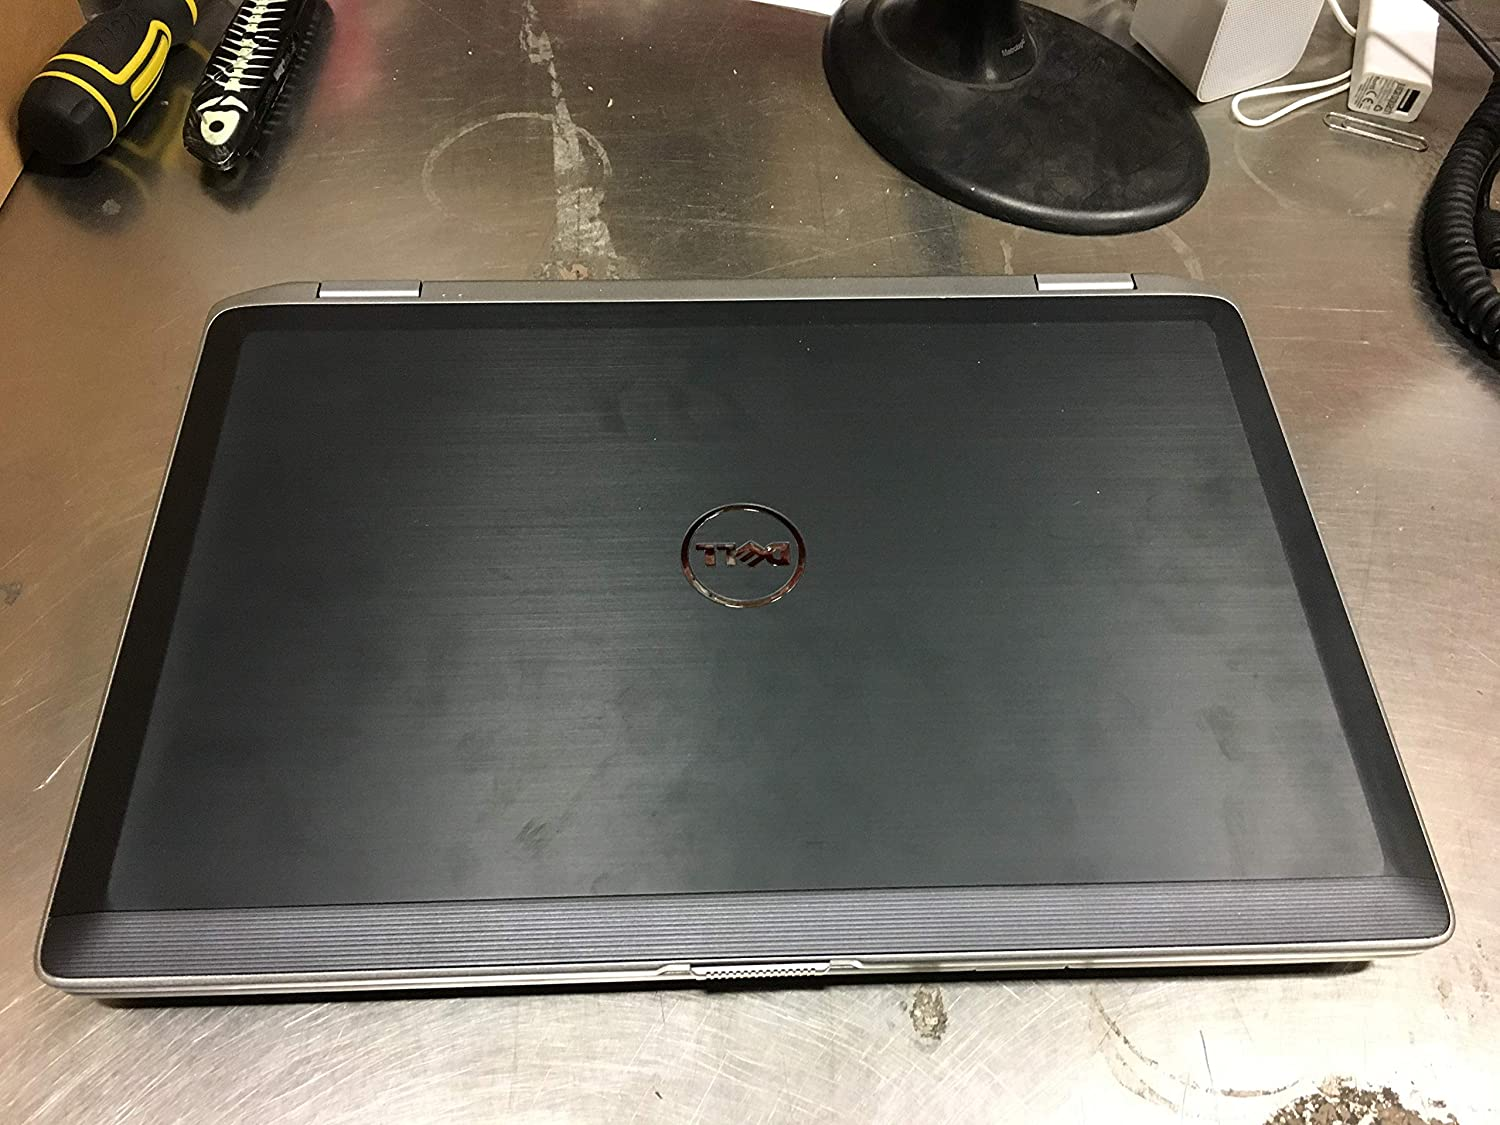 Dell Latitude E6520 Laptop Intel Core i5 2.60 GHz, 8192MB RAM, Genuine Windows 7 Pro (64-bit)